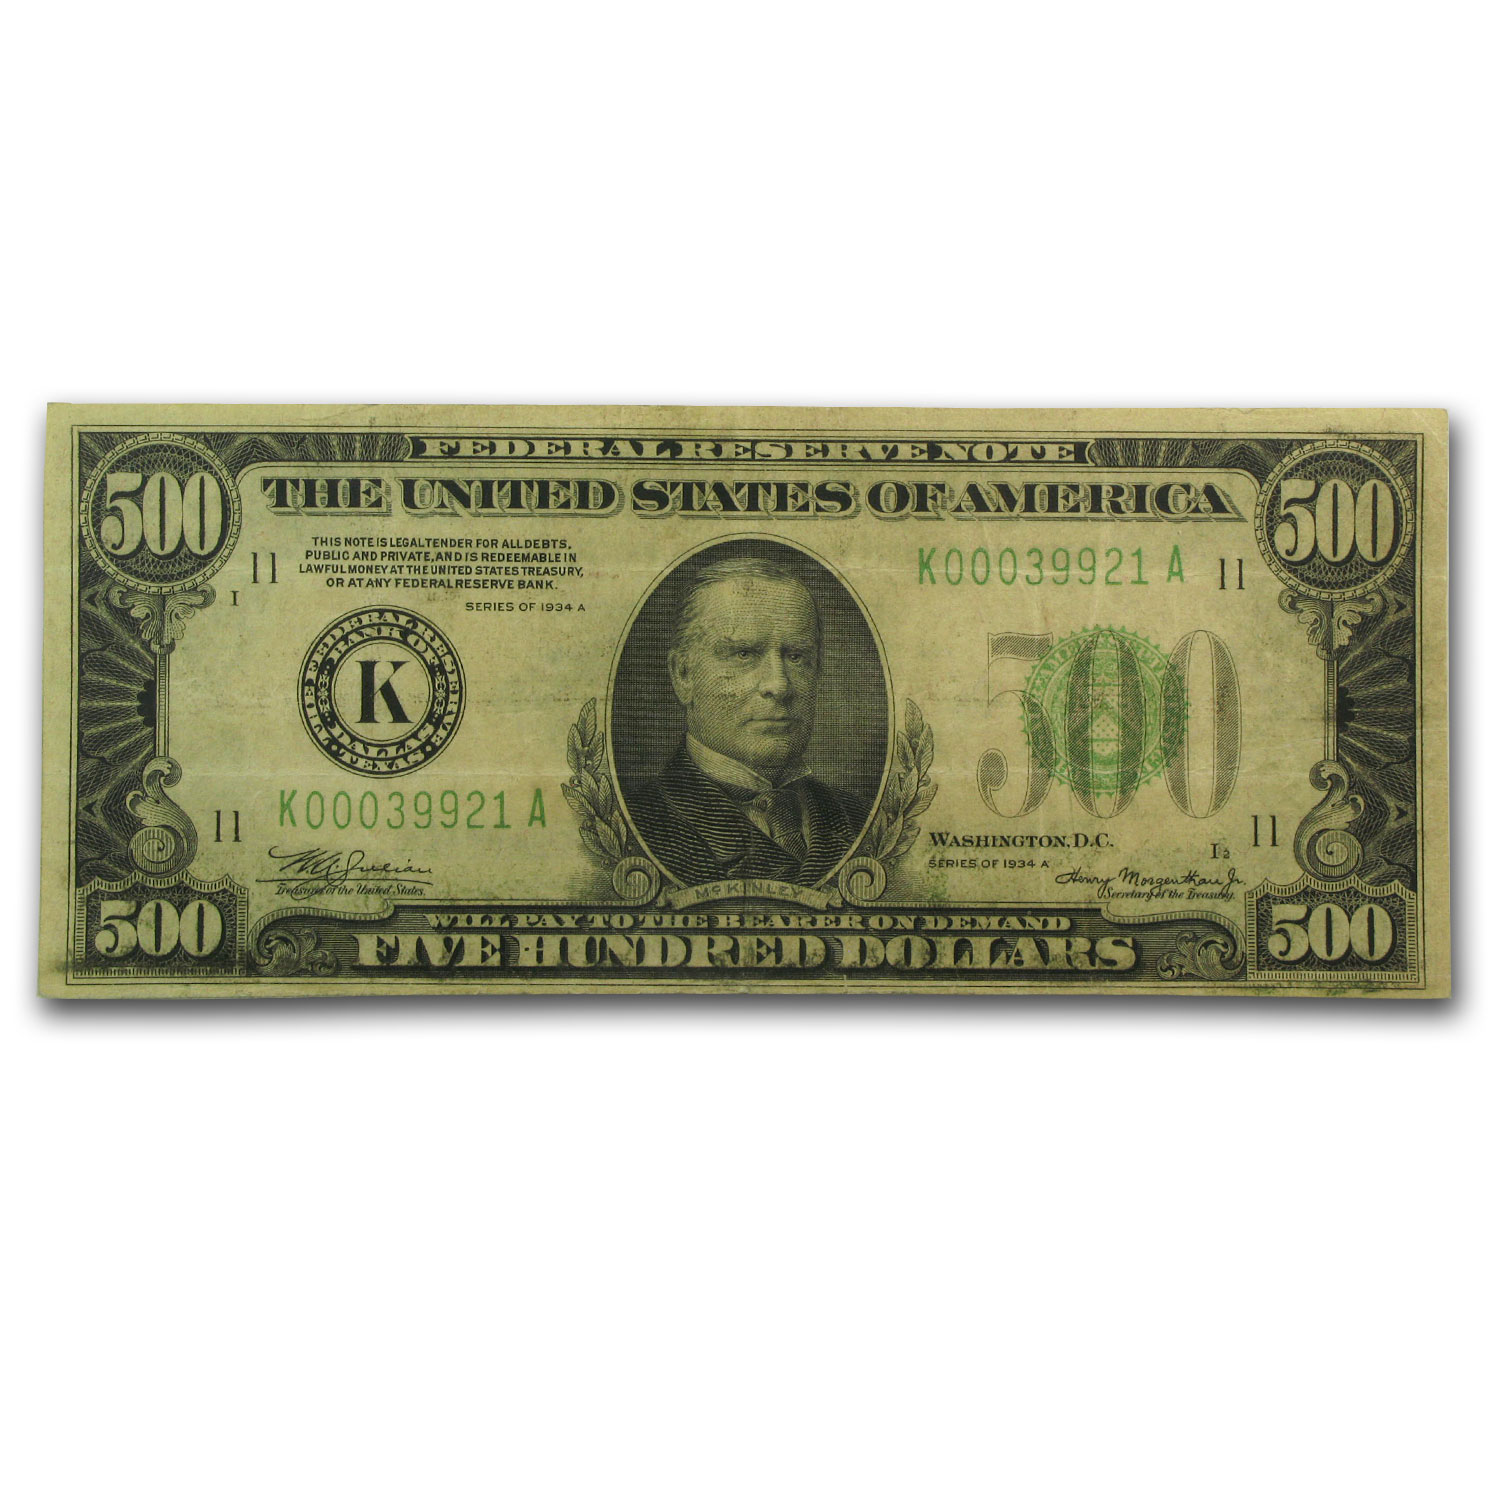 1934-A (K-Dallas) $500 FRN VF-30 App PCGS